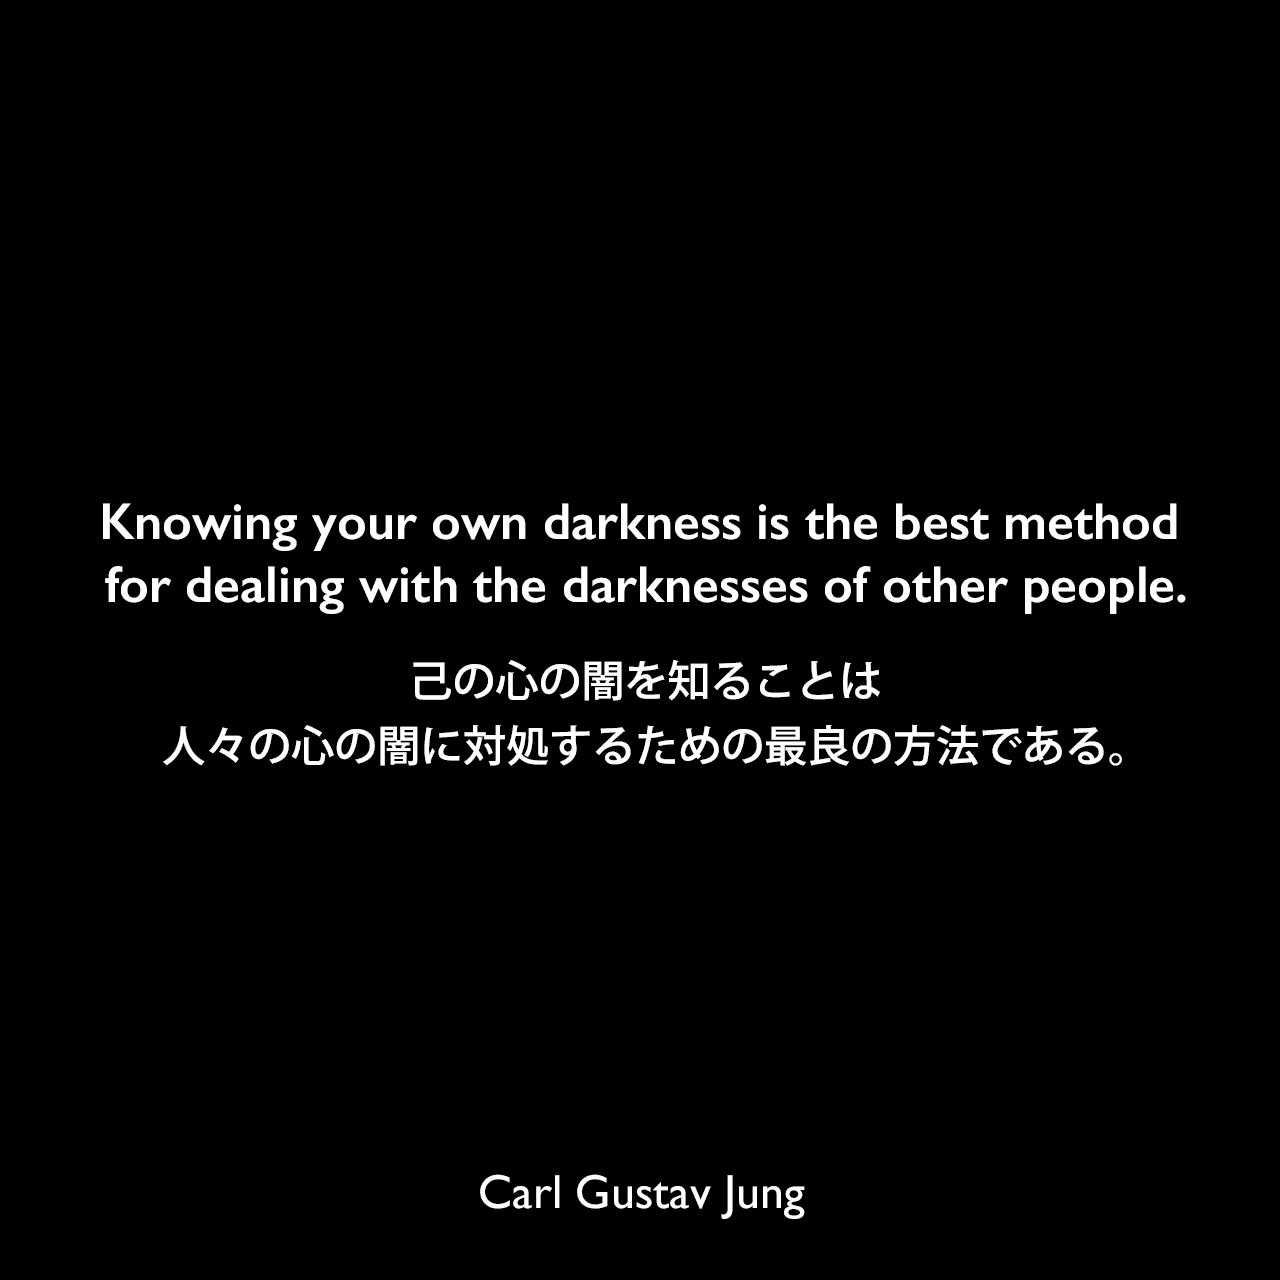 Knowing your own darkness is the best method for dealing with the darknesses of other people.己の心の闇を知ることは、人々の心の闇に対処するための最良の方法である。Carl Gustav Jung